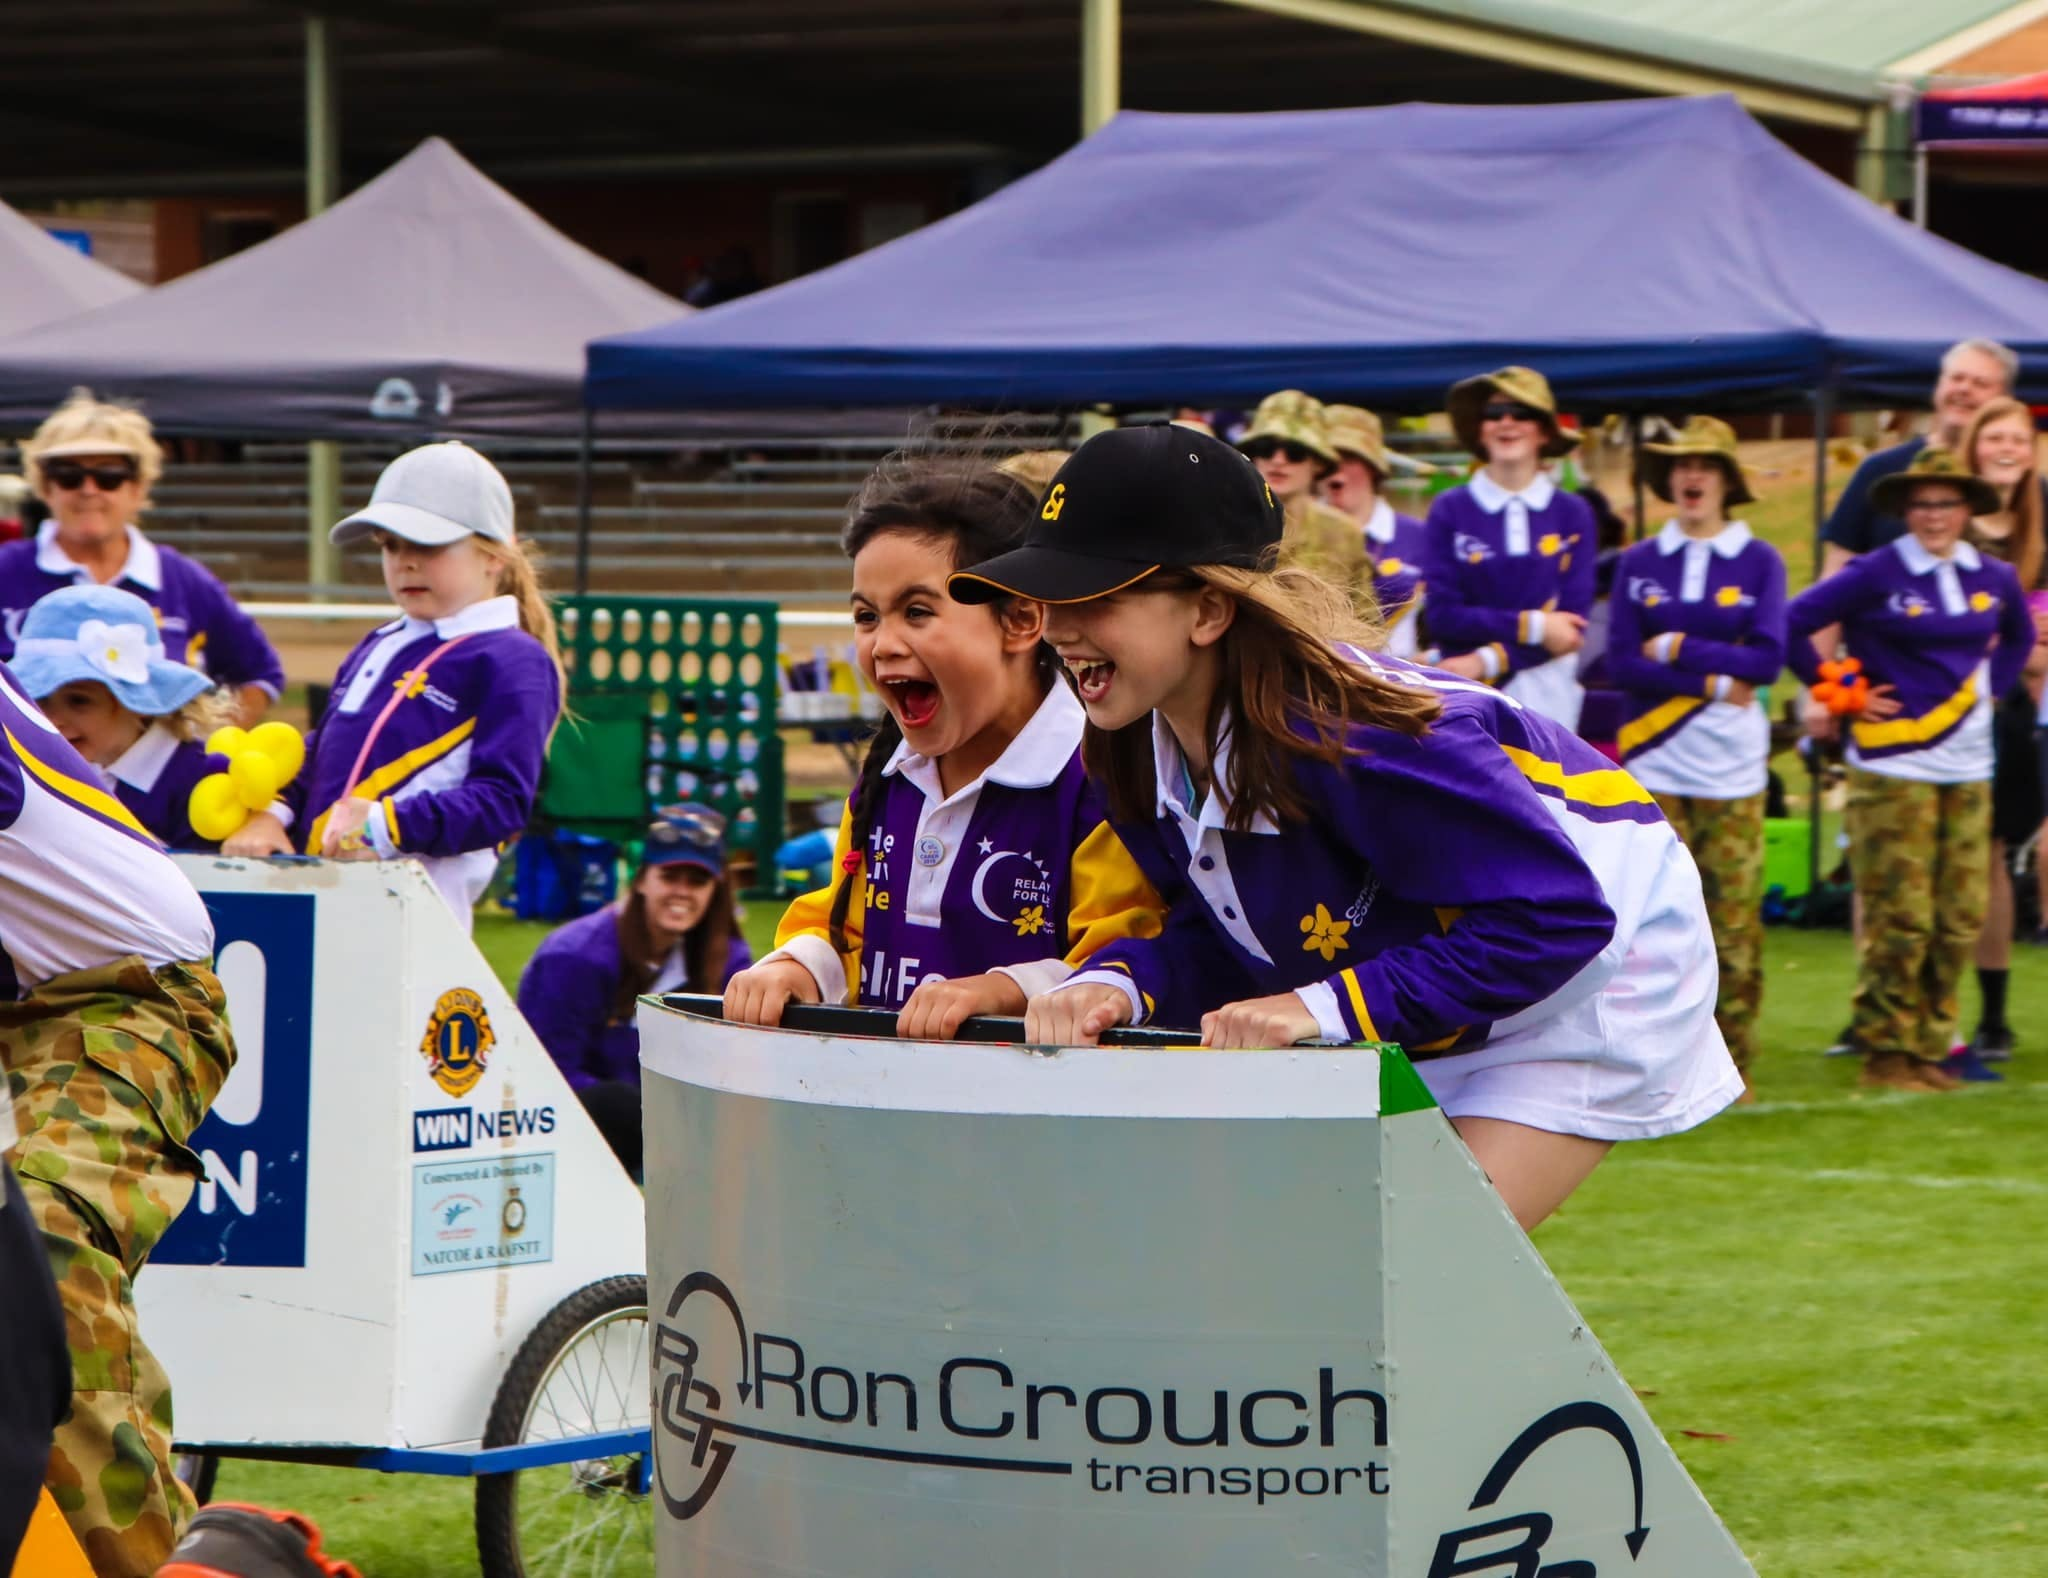 Wagga Wagga Relay For Life - QLD Tourism